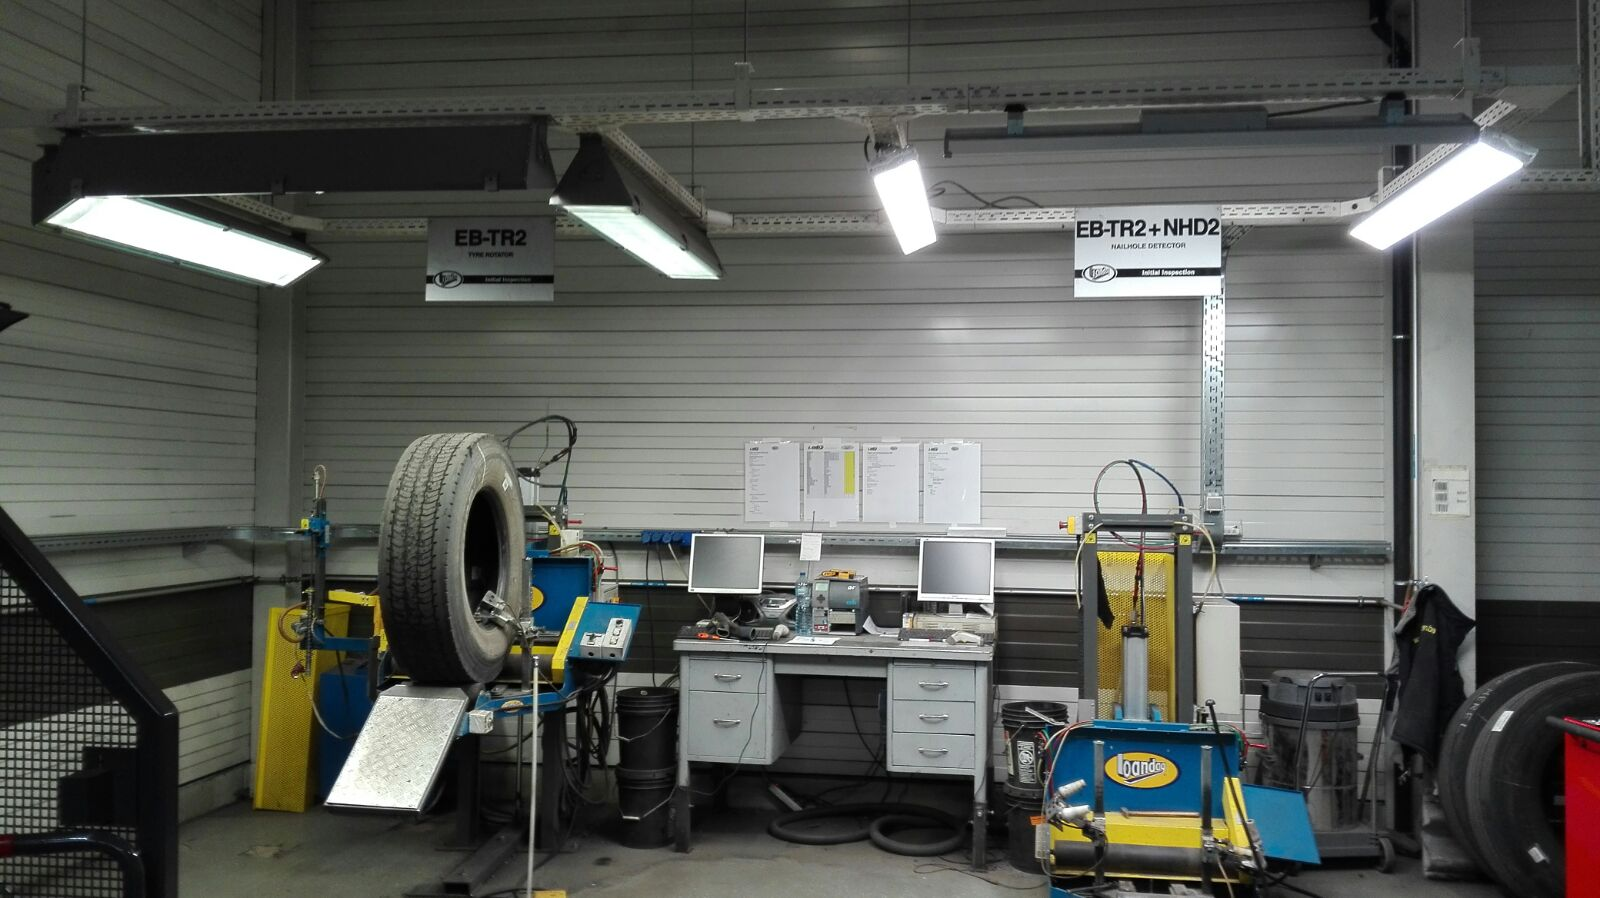 Tire center De Condé, test NANA high bay (right), measured twice the light output in comparison with fluorescent lights (left).